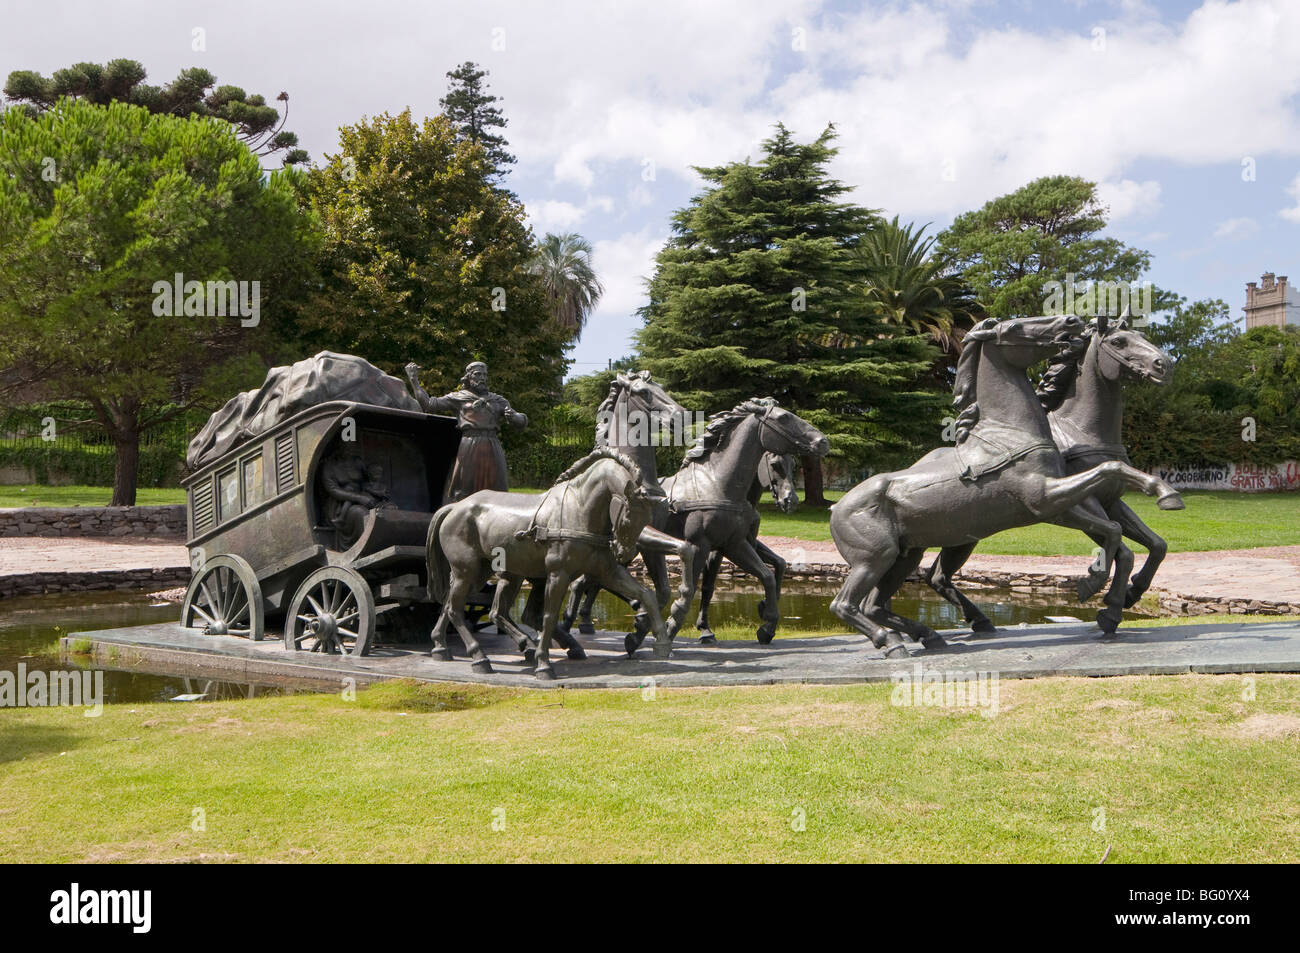 La Diligencia by Jose Belloni, a bronze statue of a stage coach and horses, Montevideo, Uruguay, South America - Stock Image